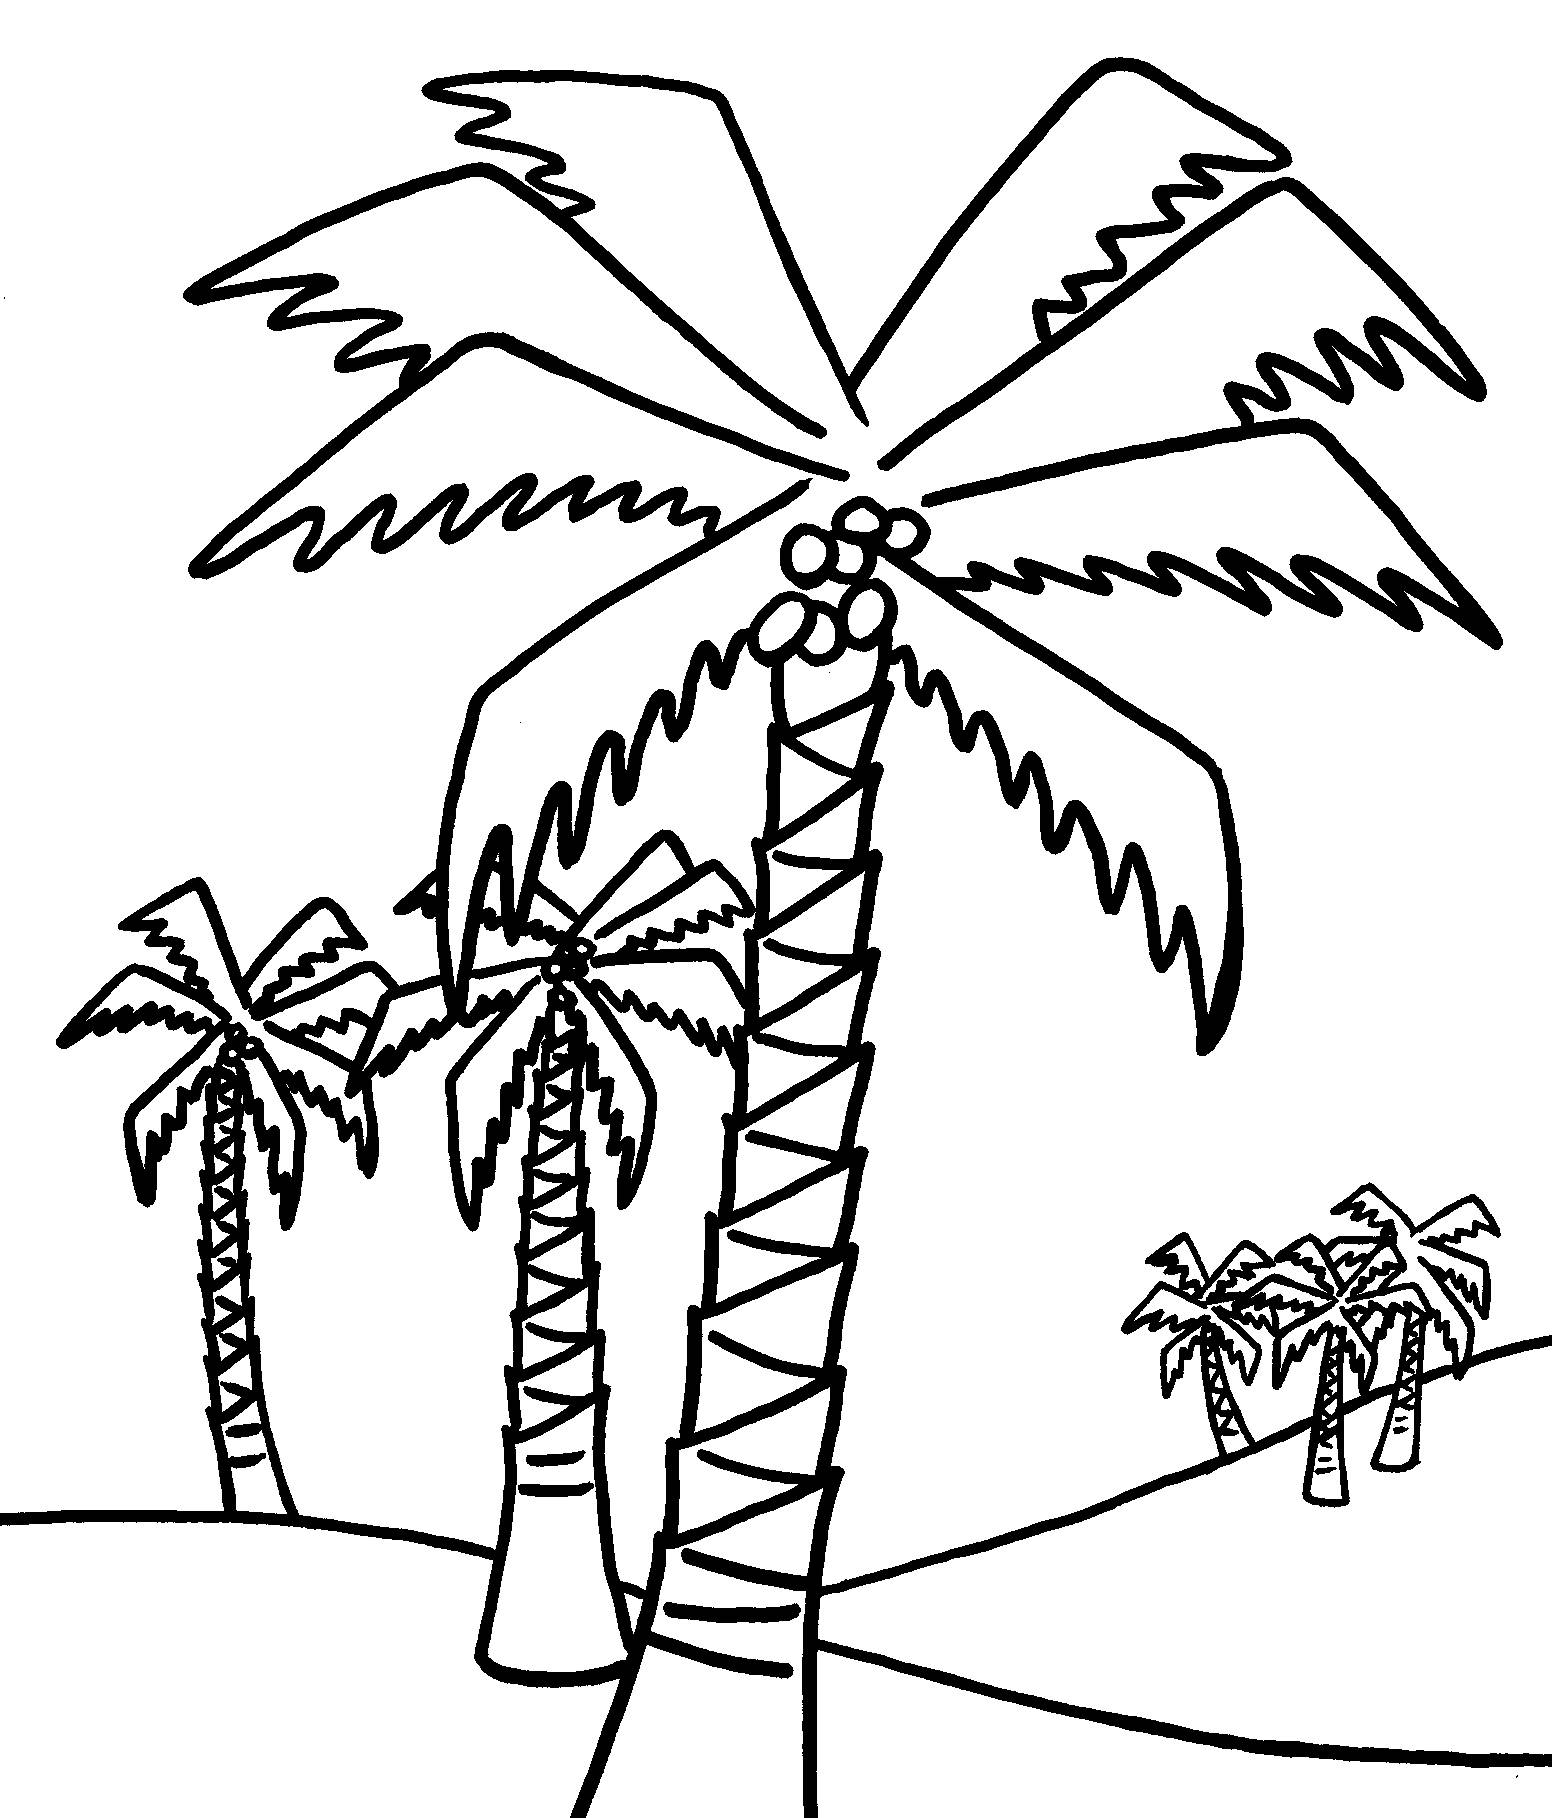 Coloring Pages ~ Chicka Boom Palm Tree Coloring Page Free Printable - Tree Coloring Pages Free Printable